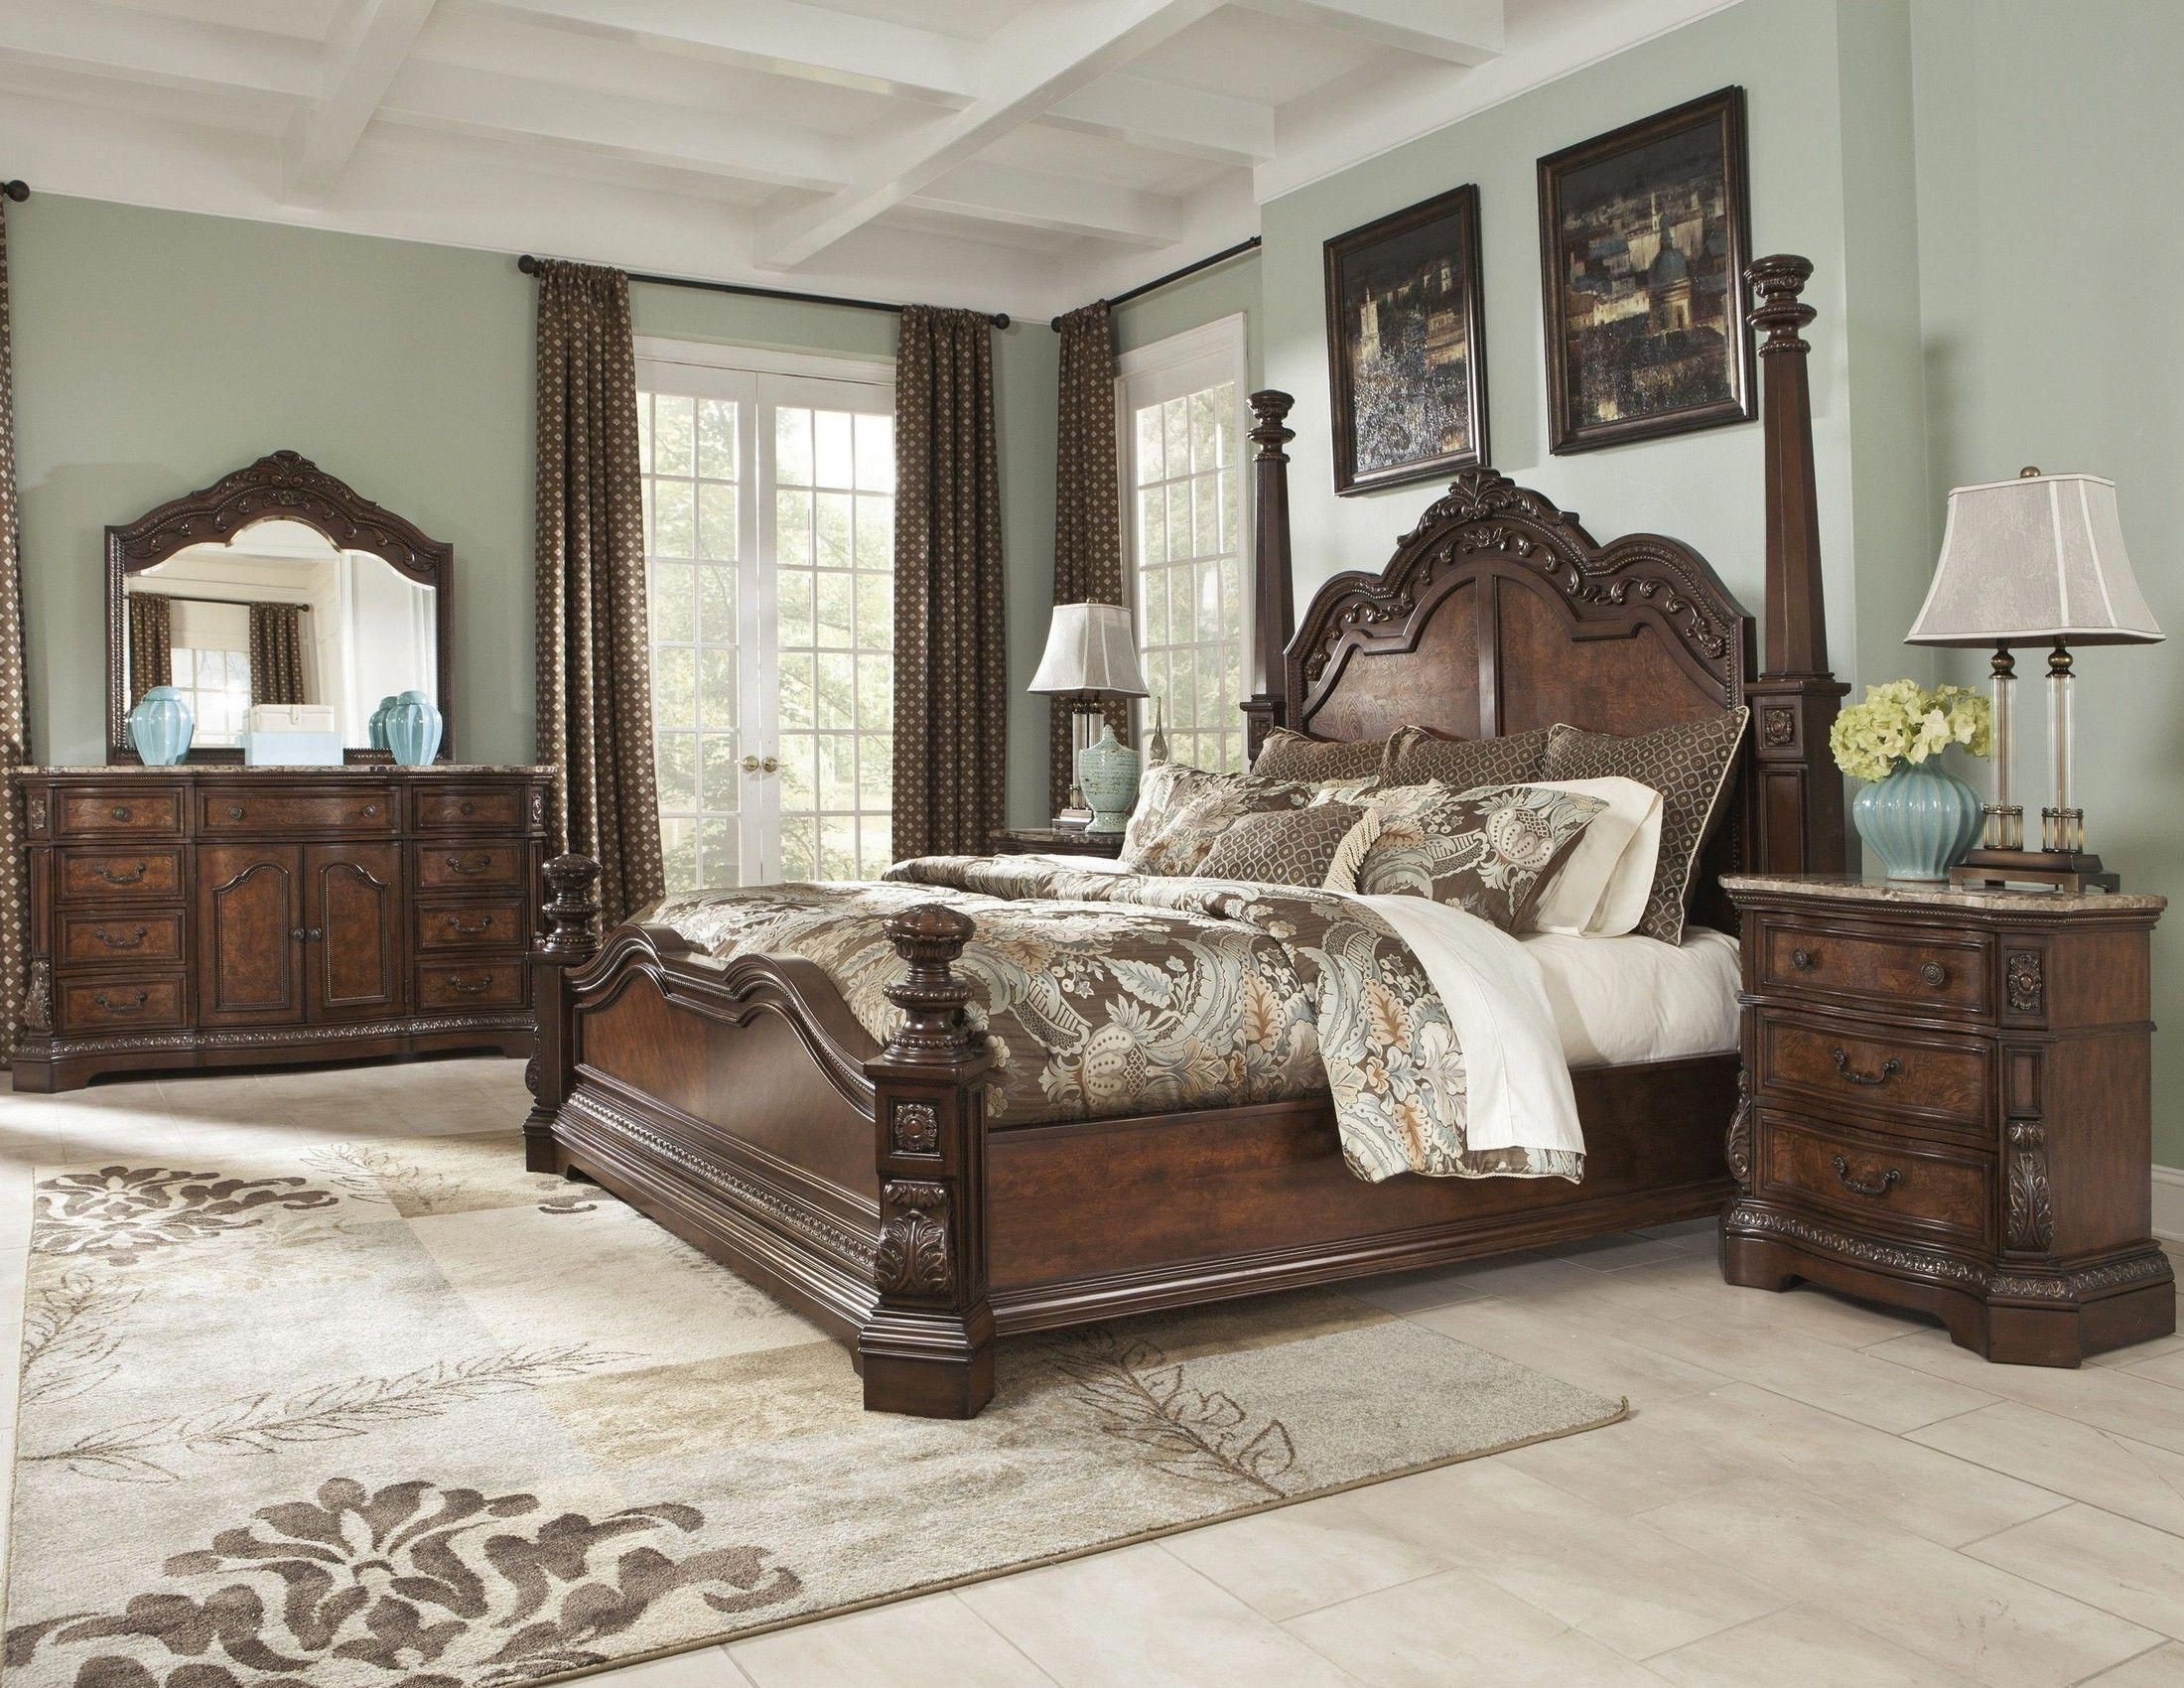 This Dark Cherry Stained Finish Ledelle Poster Bedroom Set Includes The 4 Poster Bed And A 3 D King Bedroom Sets Bedroom Sets Master Bedroom Interior